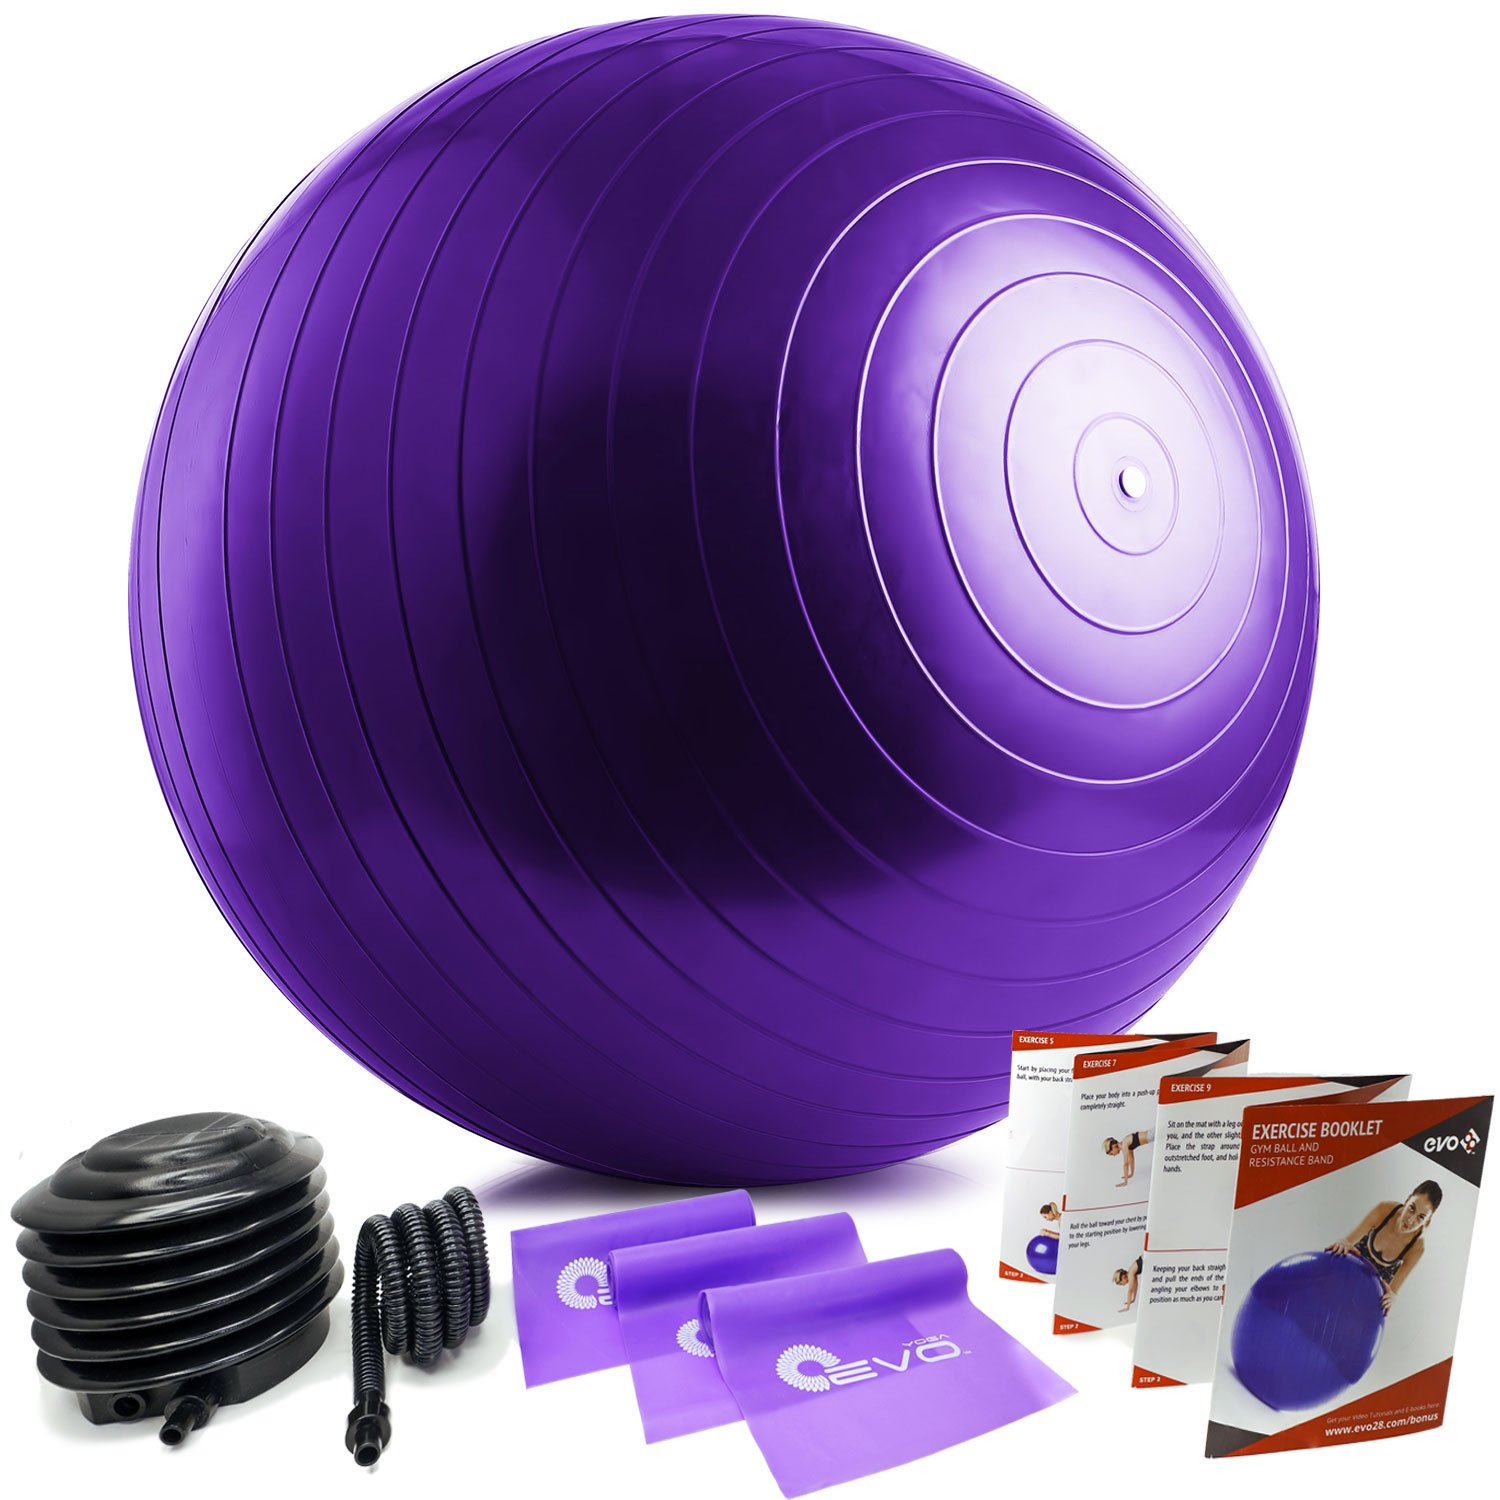 Yoga EVO Exersize Ball - Small Therapy Ball 65 cm